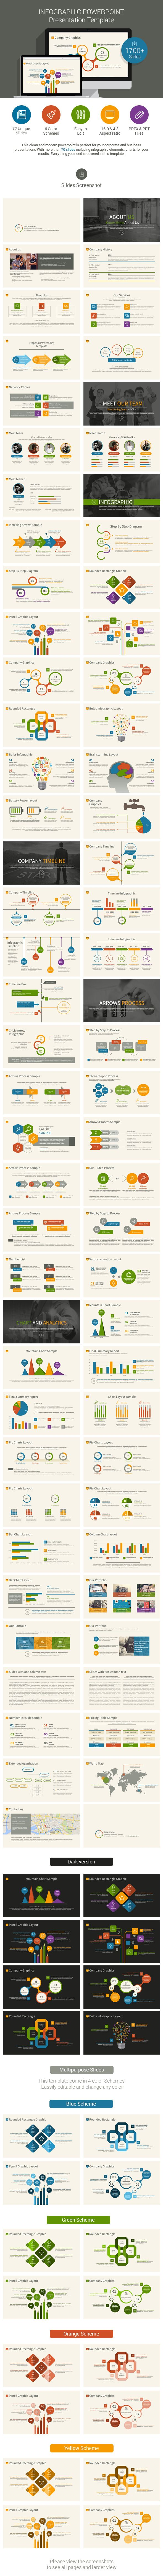 Infographic Powerpoint Template PowerPoint Template / Theme / Presentation / Slides / Background / Power Point